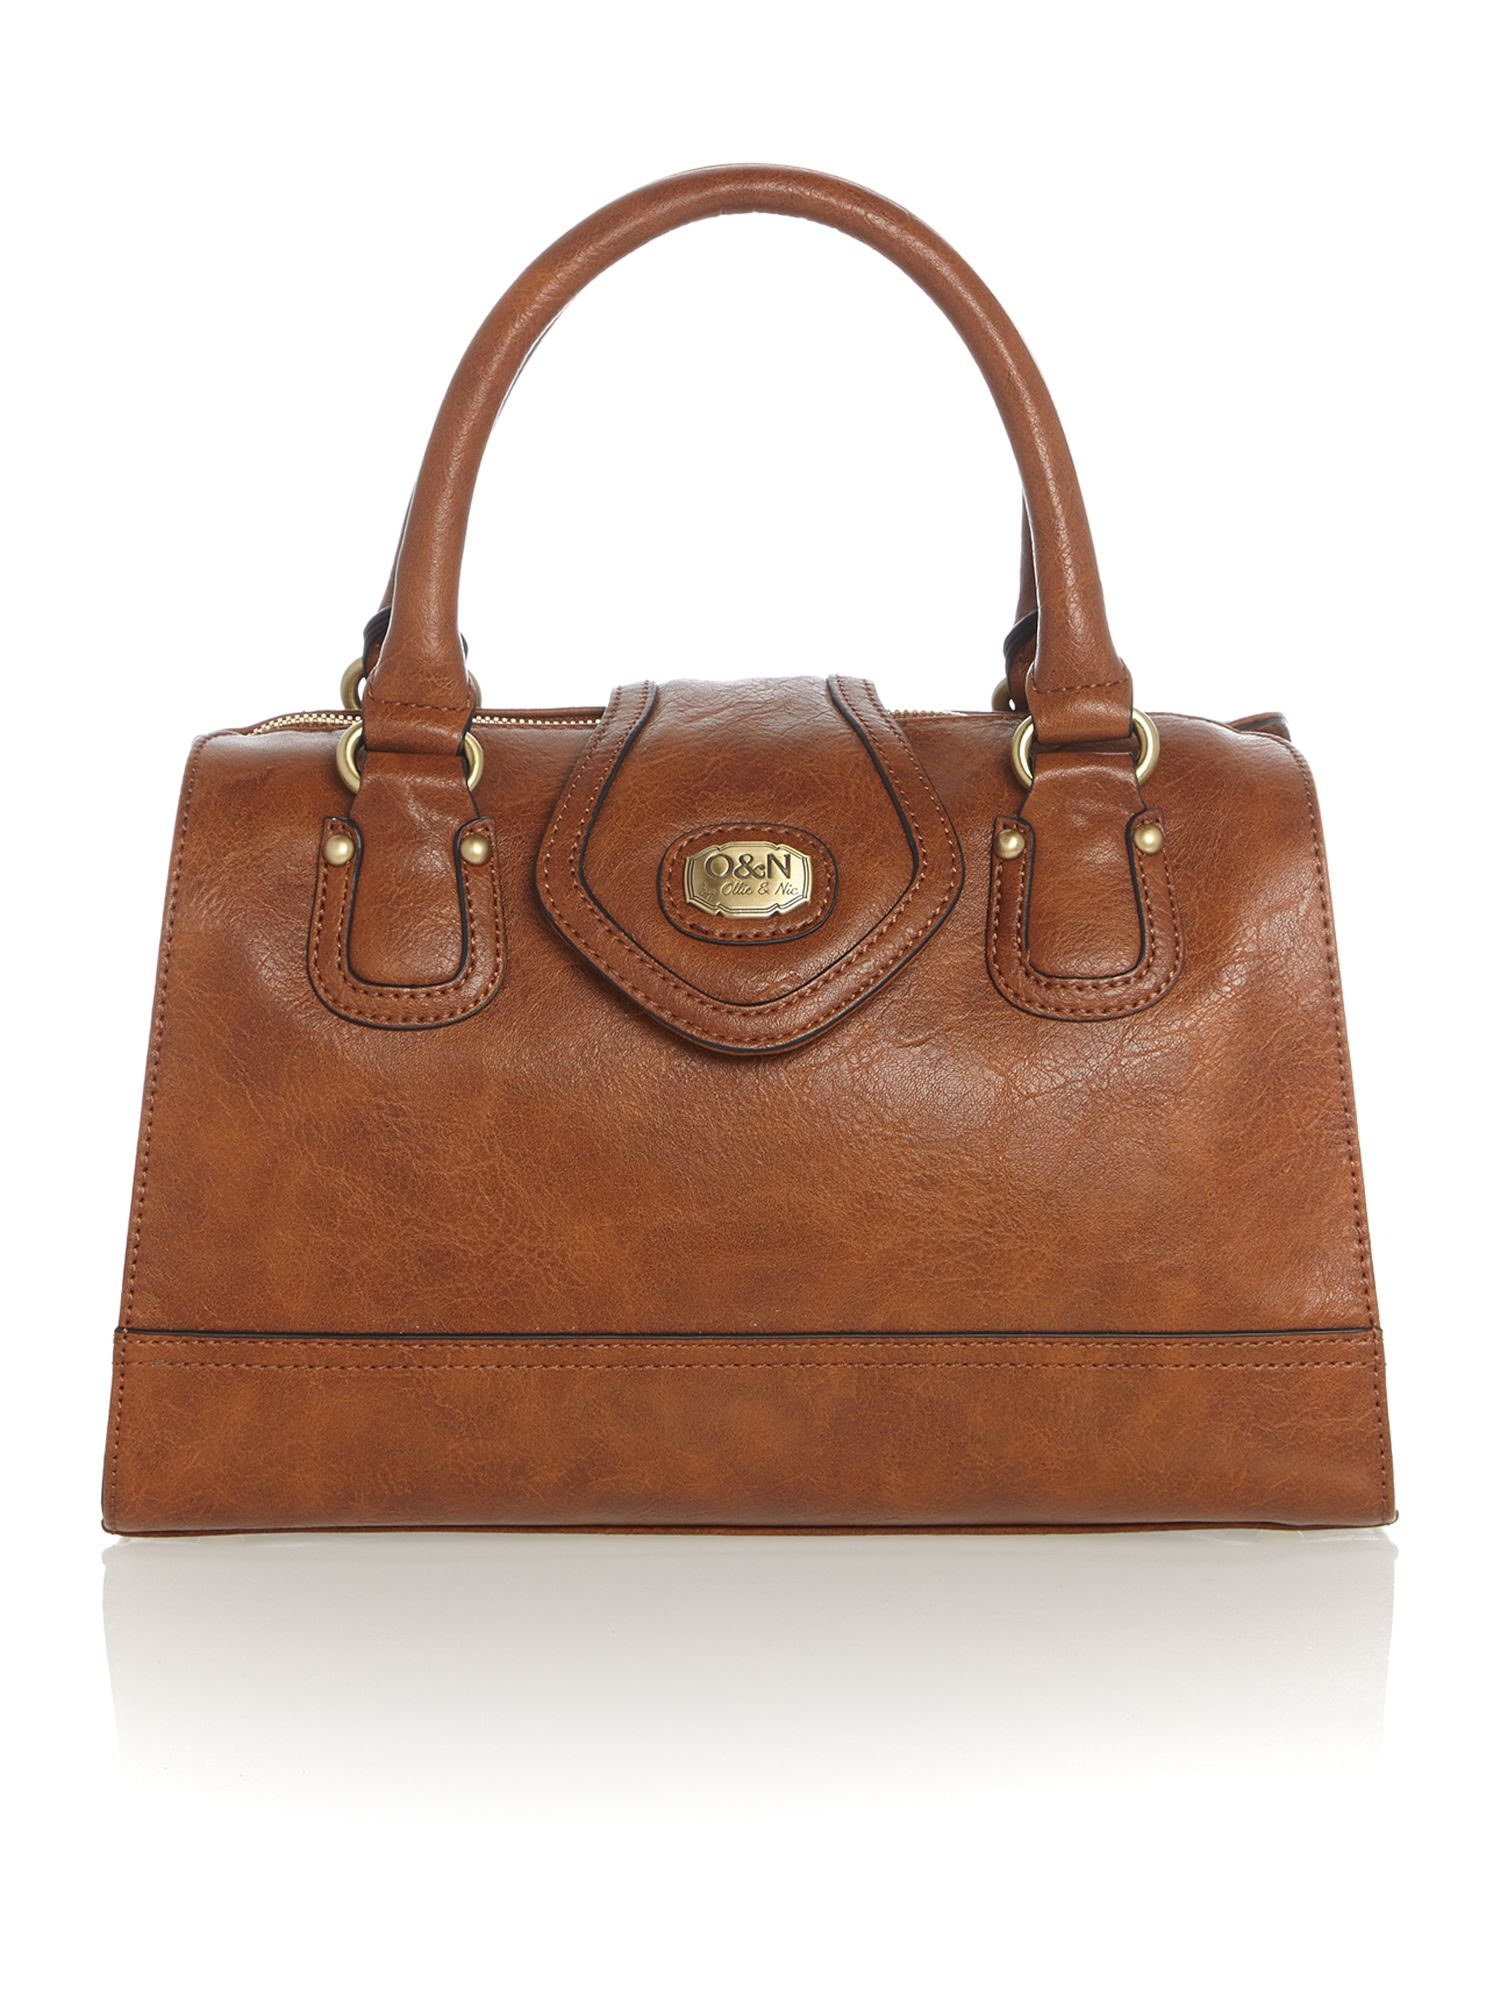 Corinne tan tote bag